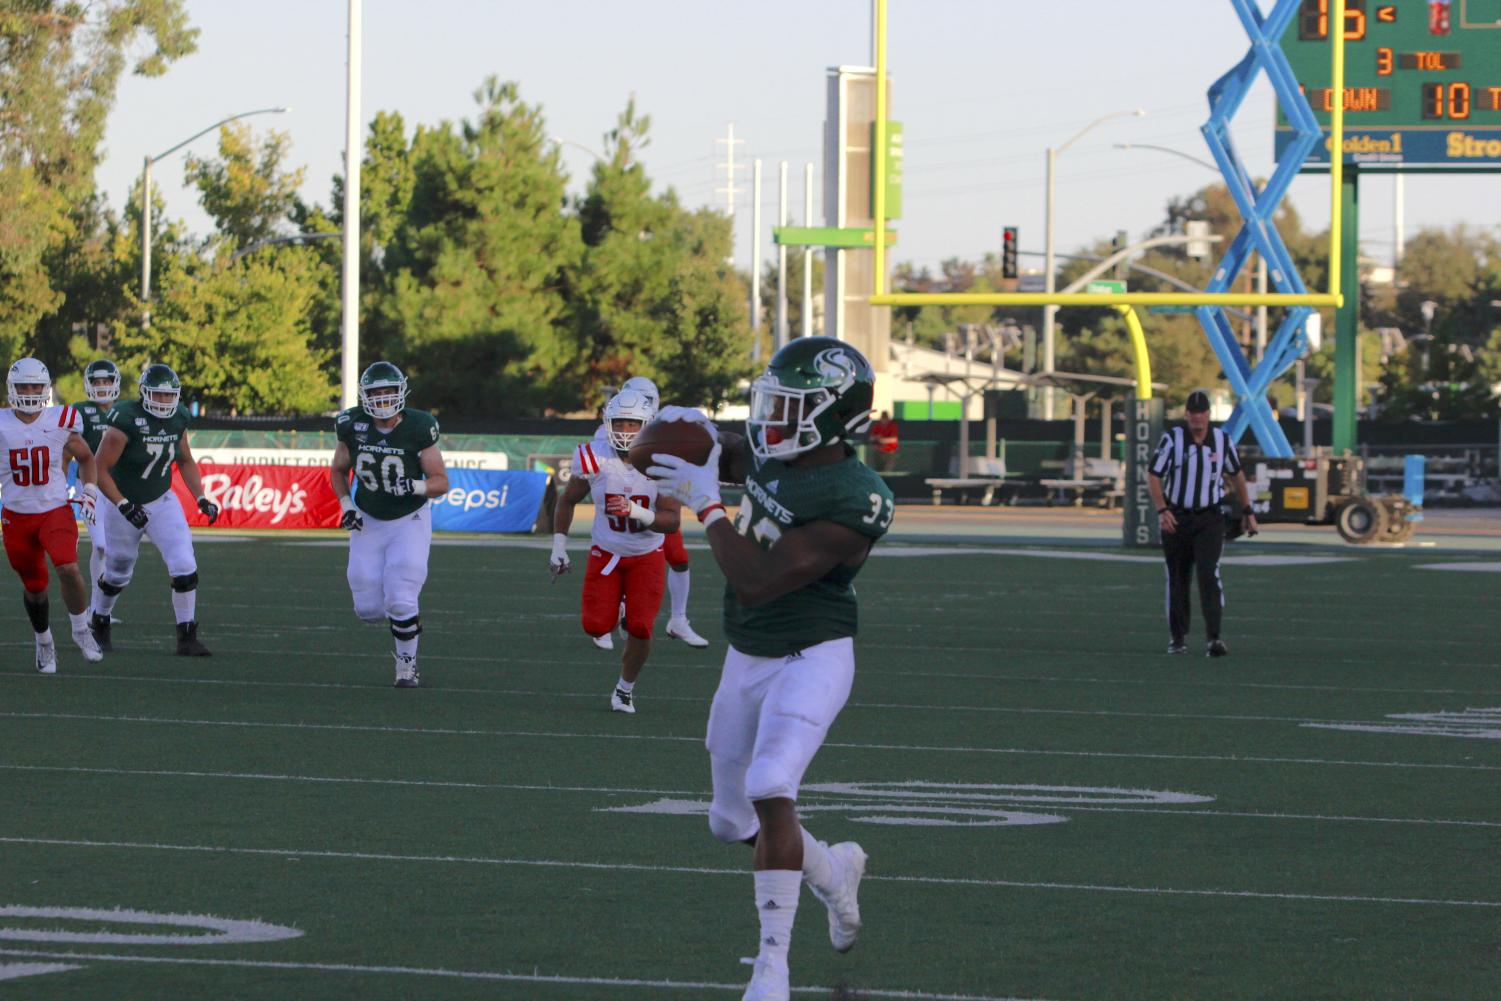 Sac+State+junior+running+back+Elijah+Dotson+catches+a+pass+along+the+sideline+en+route+to+a+touchdown+against+Southern+Oregon+on+Saturday%2C+August+31%2C+at+Hornet+Stadium.+Dotson+had+110+all+purpose+yards+and+three+touchdowns+total.